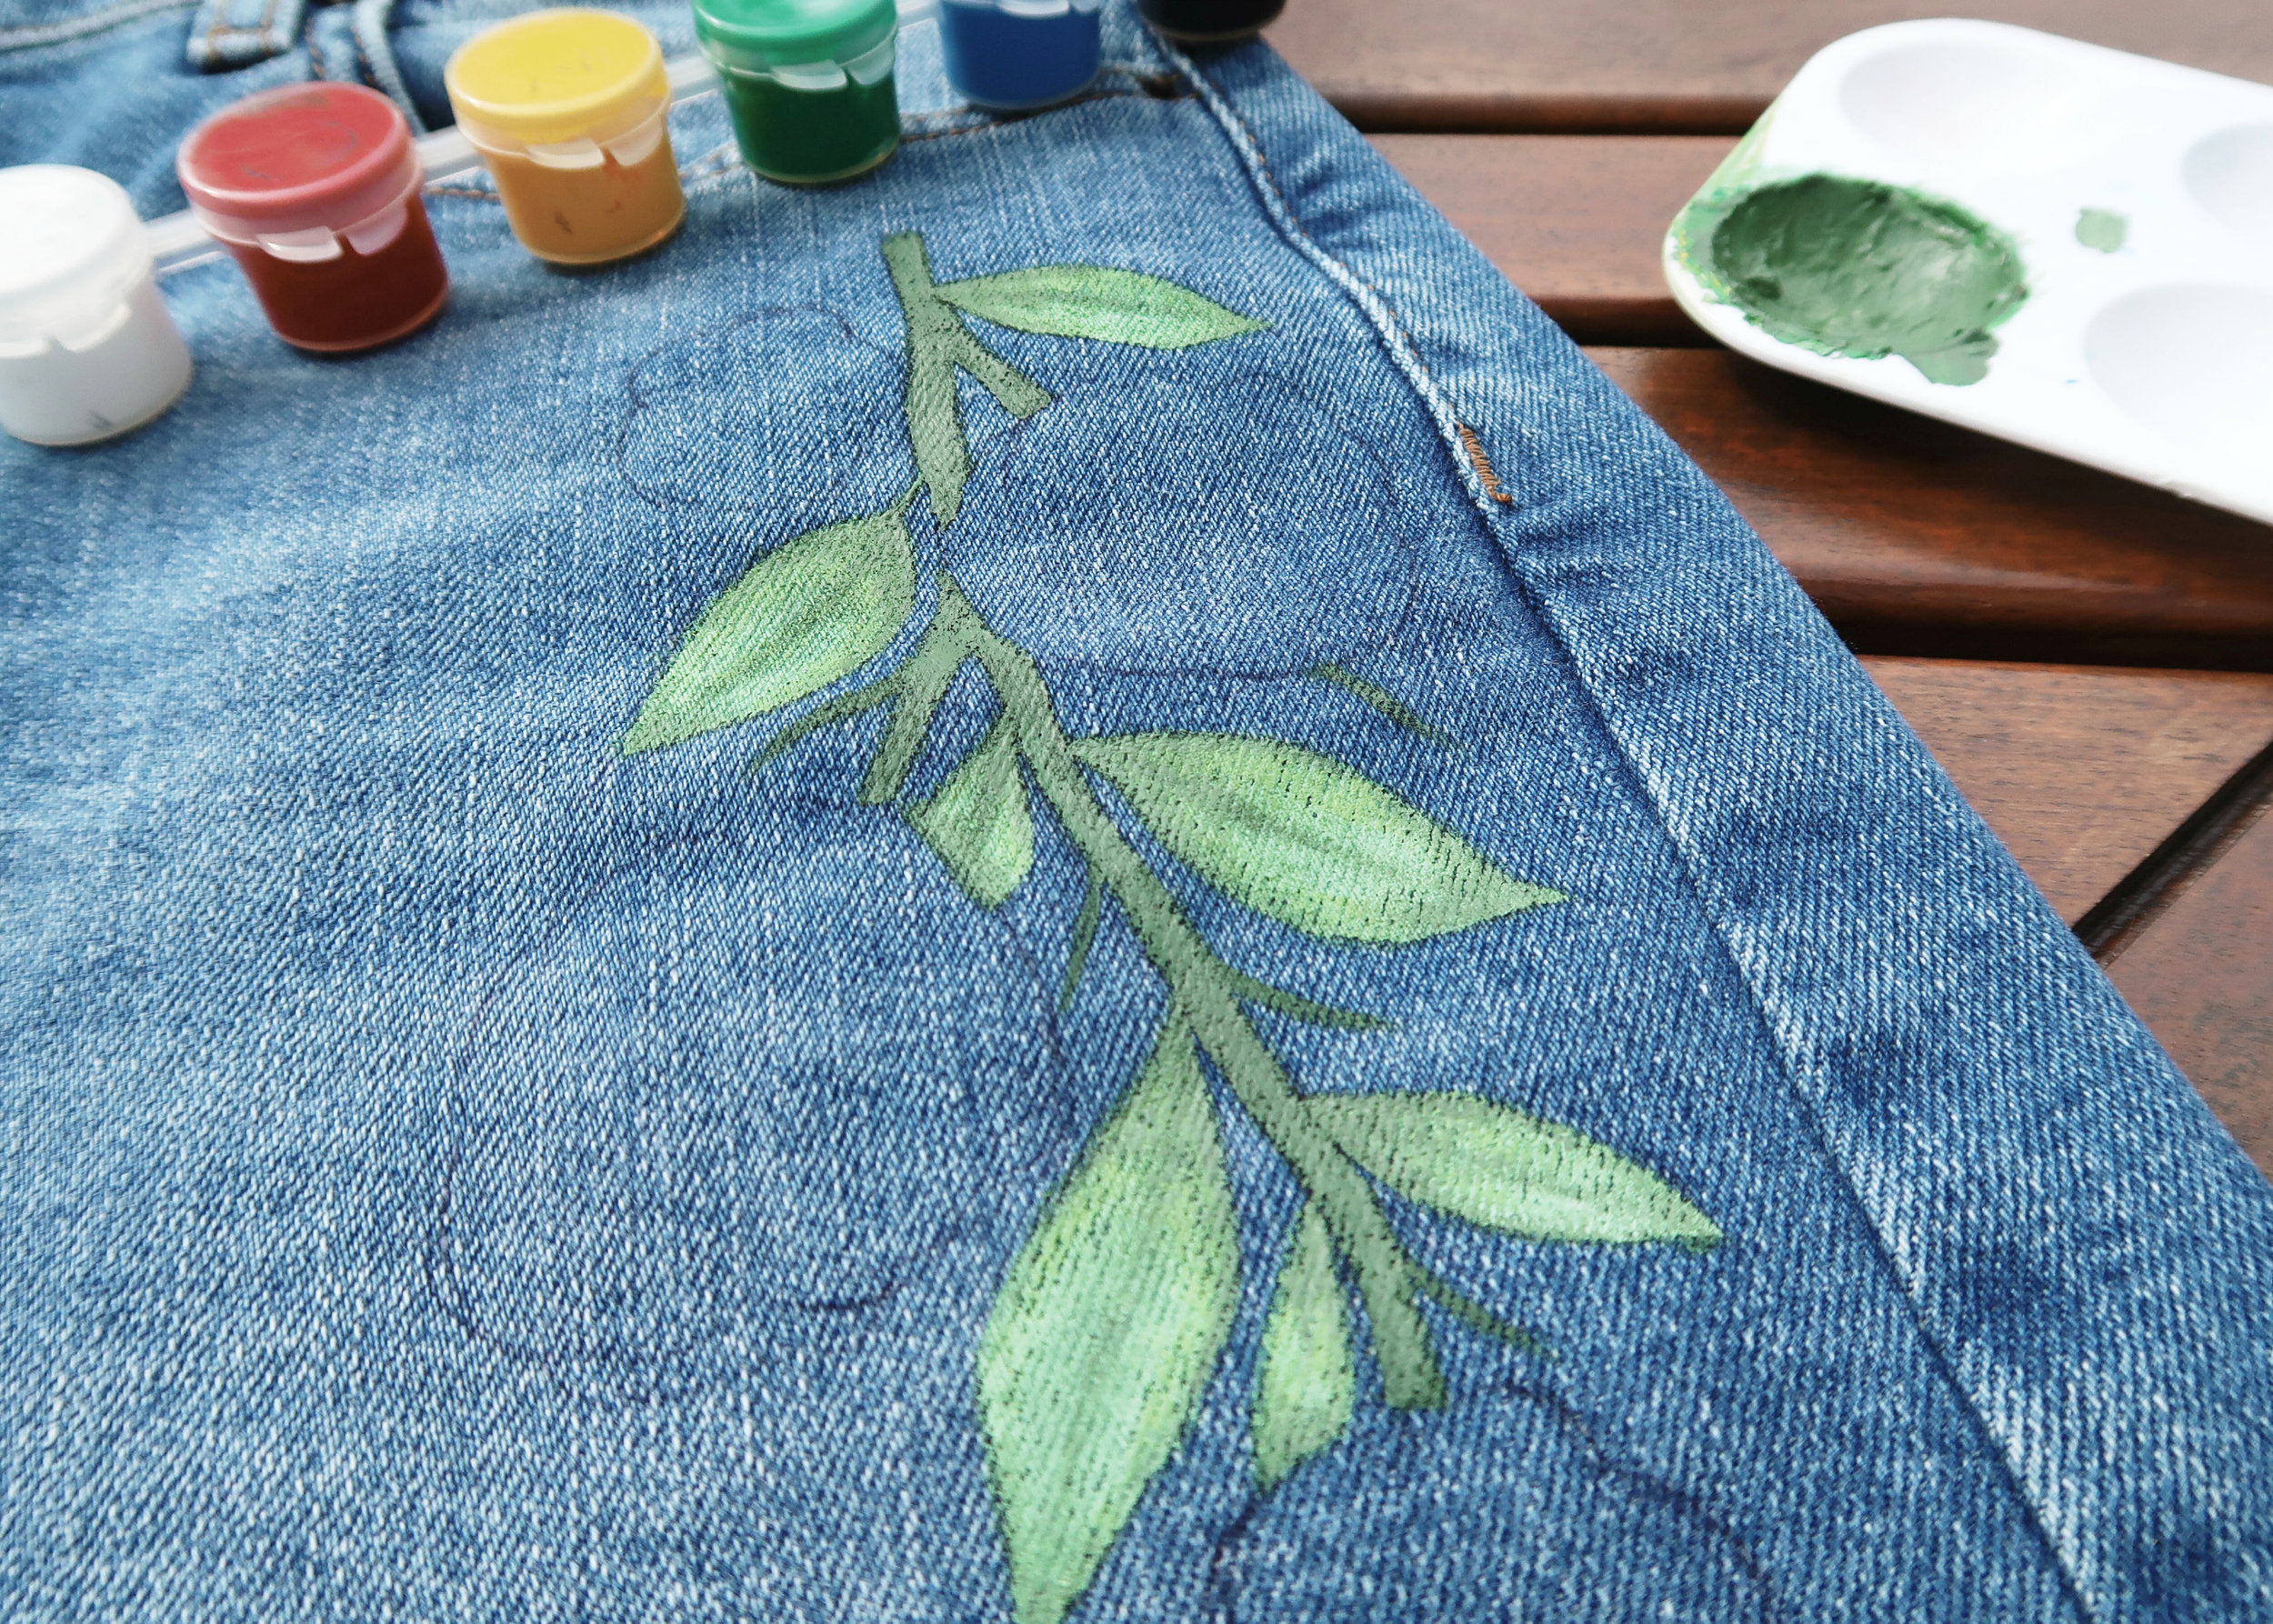 4. - Next, mix up a darker green and use this to paint the stems and to create some shadows on each of the leaves. Create an even darker green to add shadows to the stem. Using the white, add in some highlights.